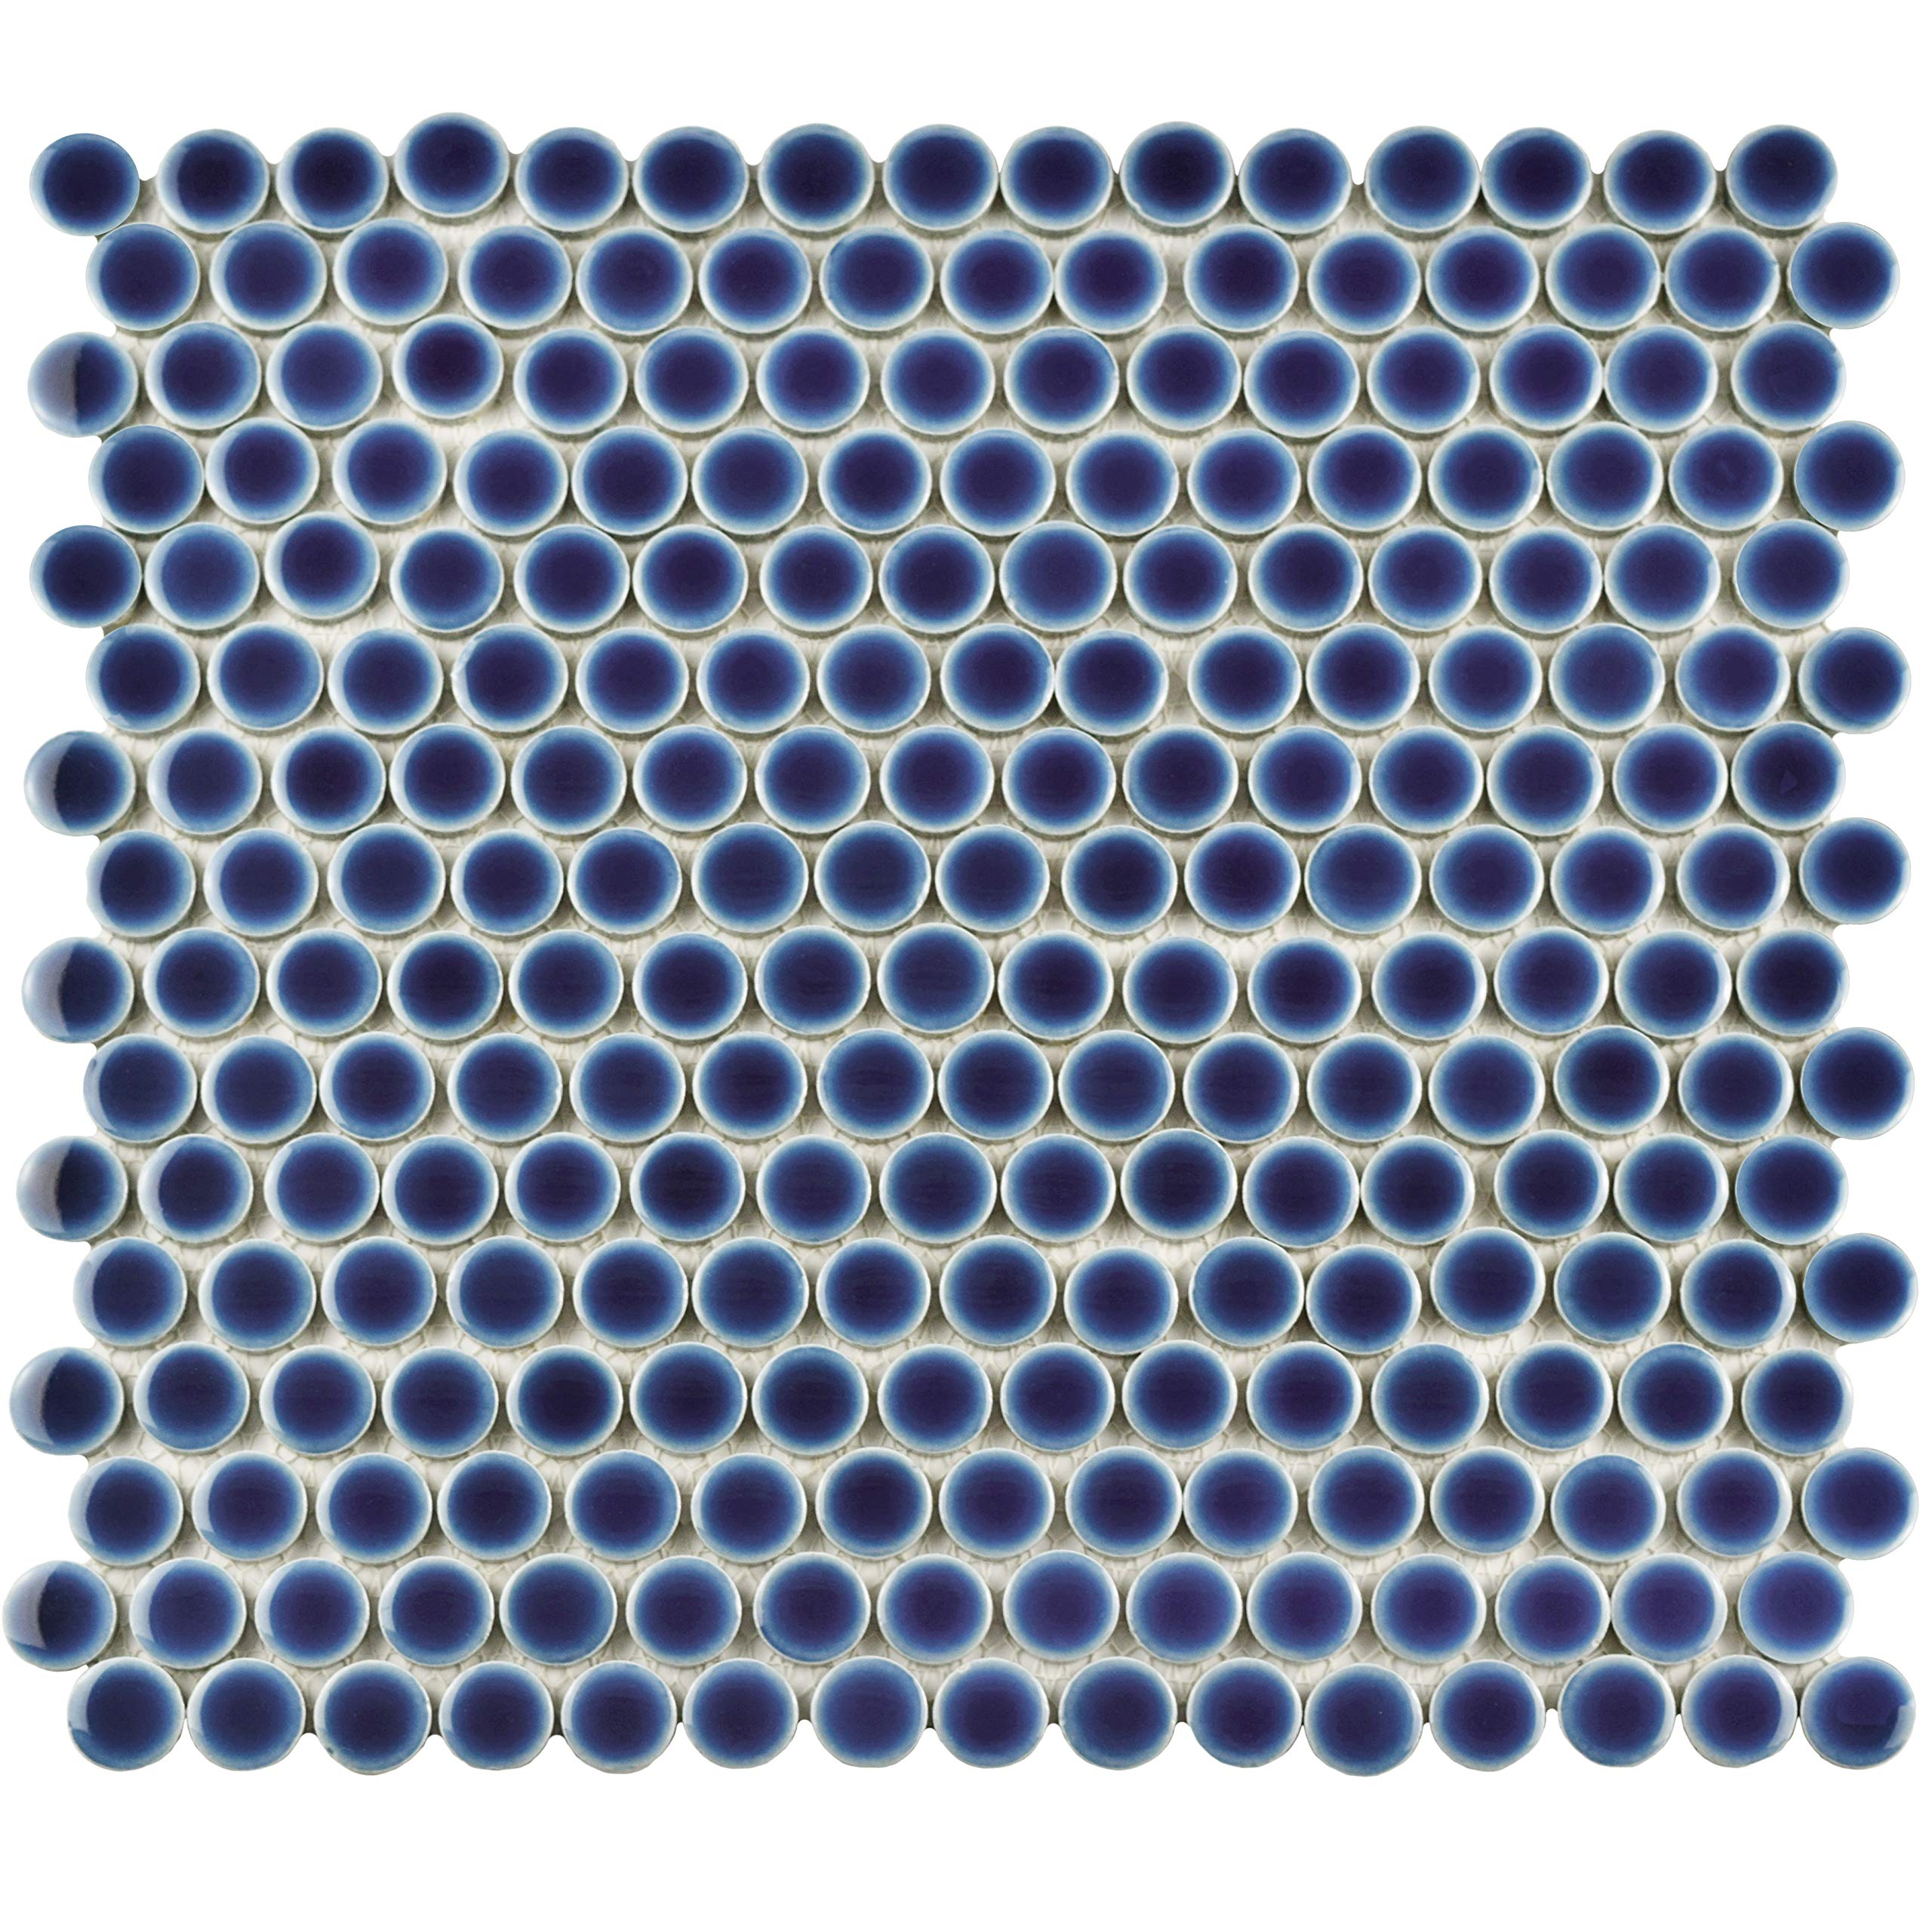 SomerTile FKOMPR04 Penny Porcelain Mosaic Floor and Wall, 12'' x 12.625'', Smoky Blue Tile, 10 Piece